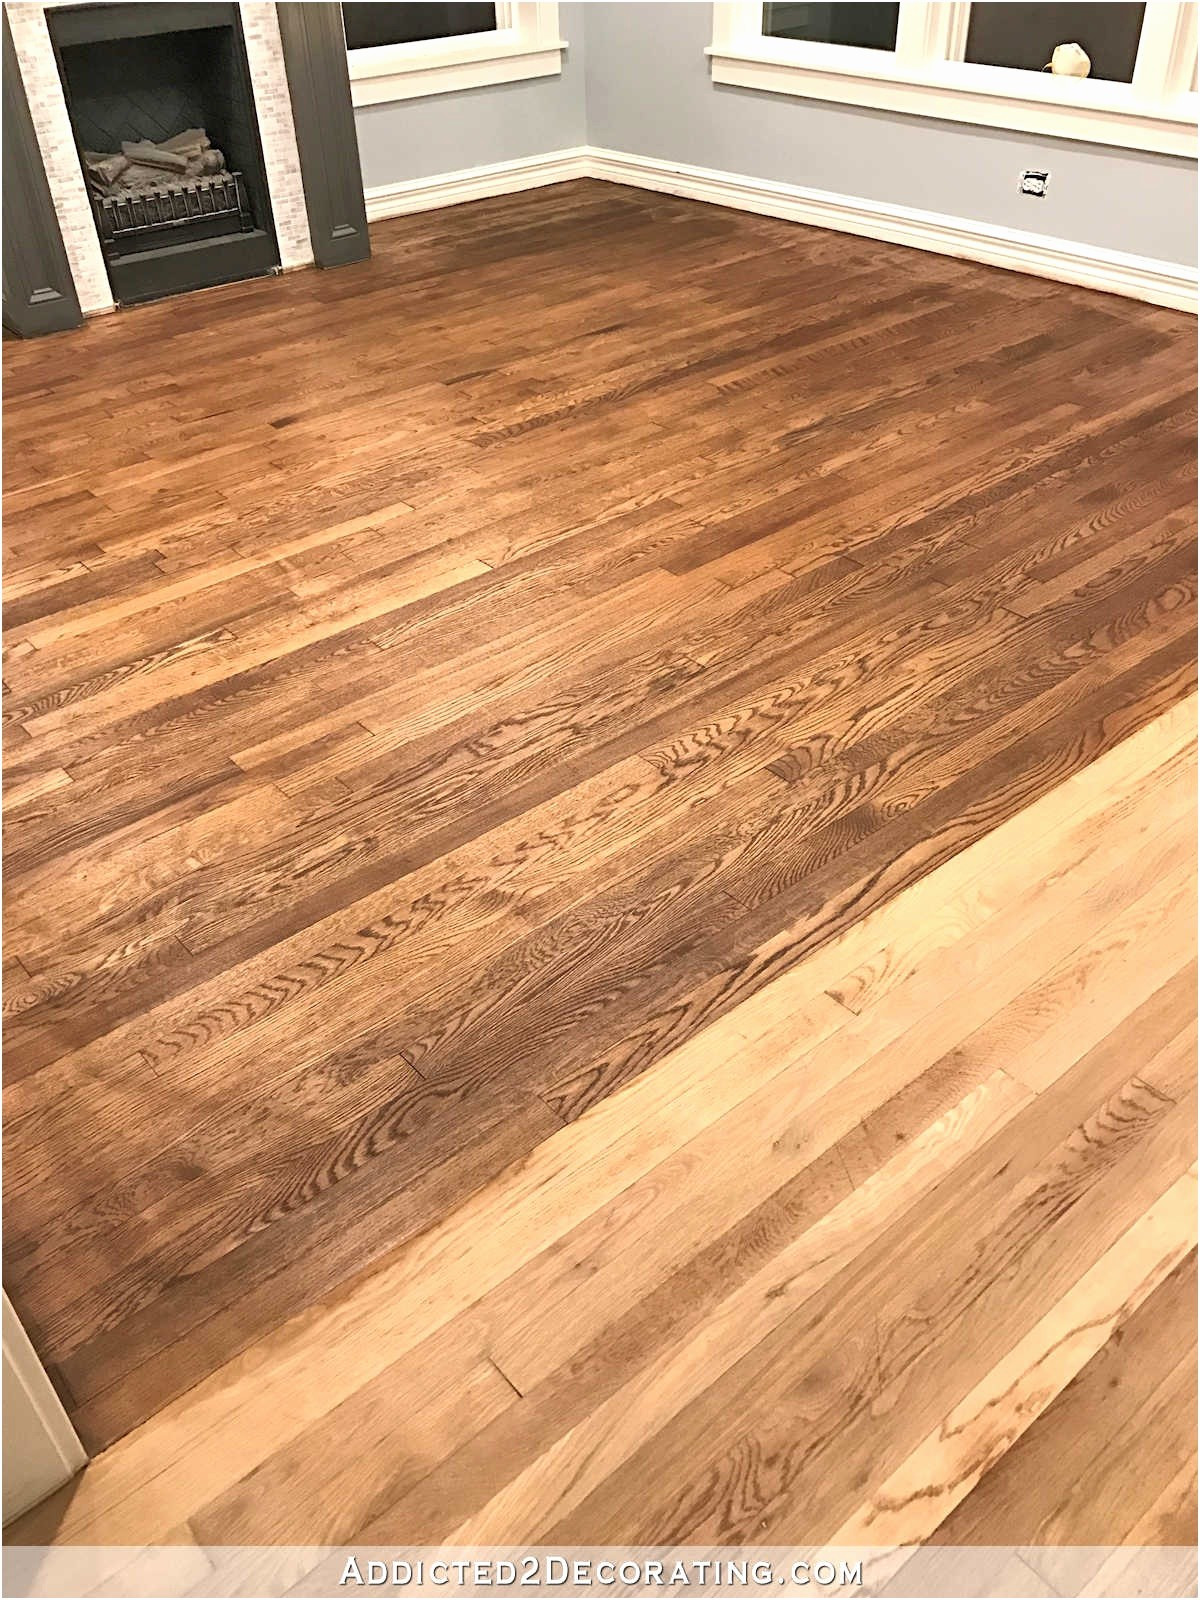 Shaw Acacia Hardwood Flooring Of 17 Fresh Hardwood Laminate Flooring Pictures Dizpos Com Pertaining to Hardwood Laminate Flooring Fresh Picture 48 Of 50 Armstrong Hardwood Flooring Fresh Hardwood Images Of 17